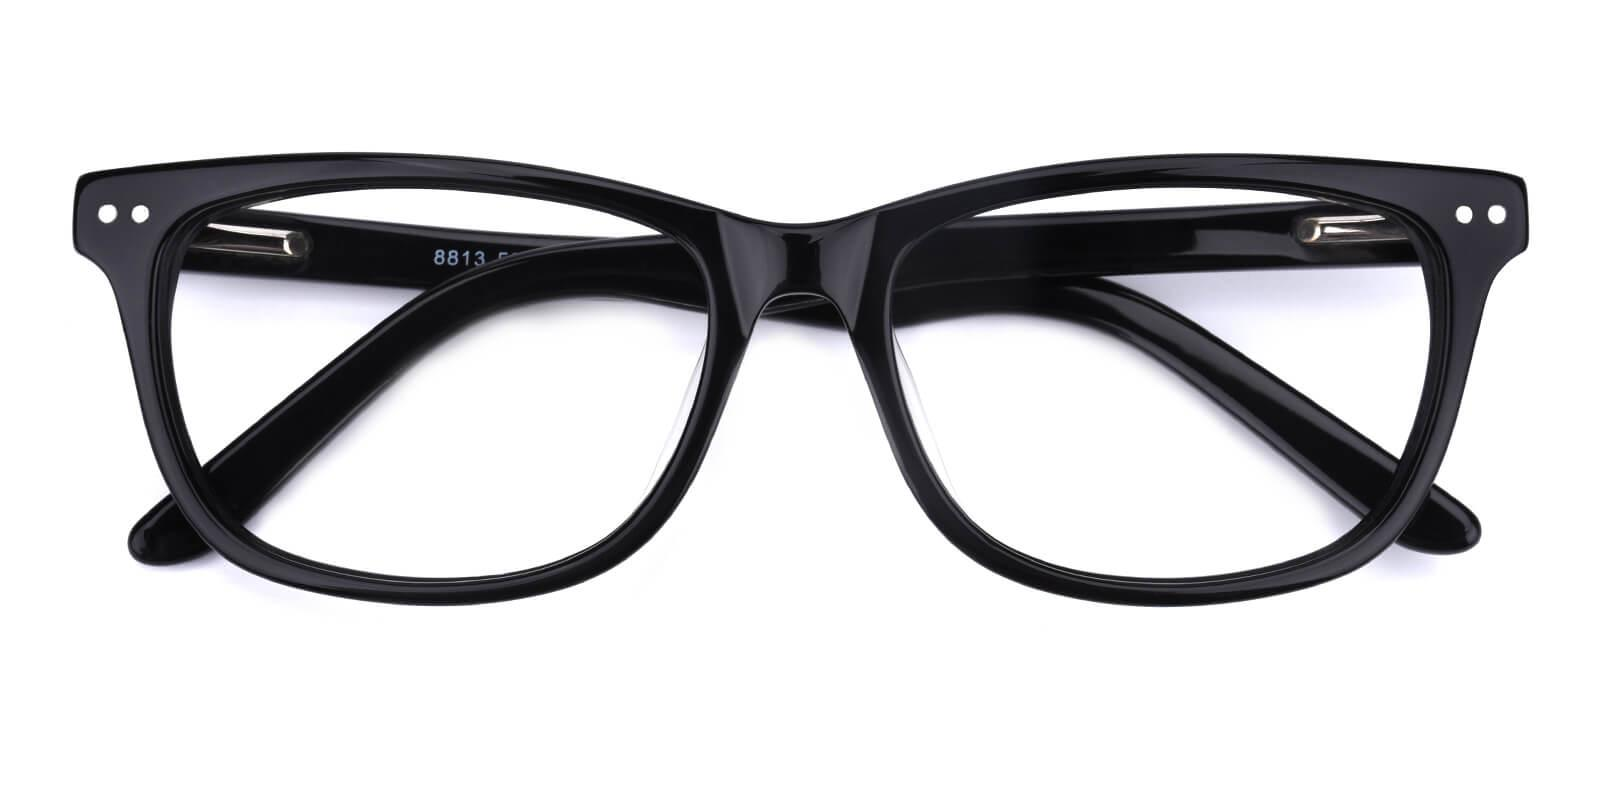 Prologue-Black-Rectangle-Acetate-Eyeglasses-detail